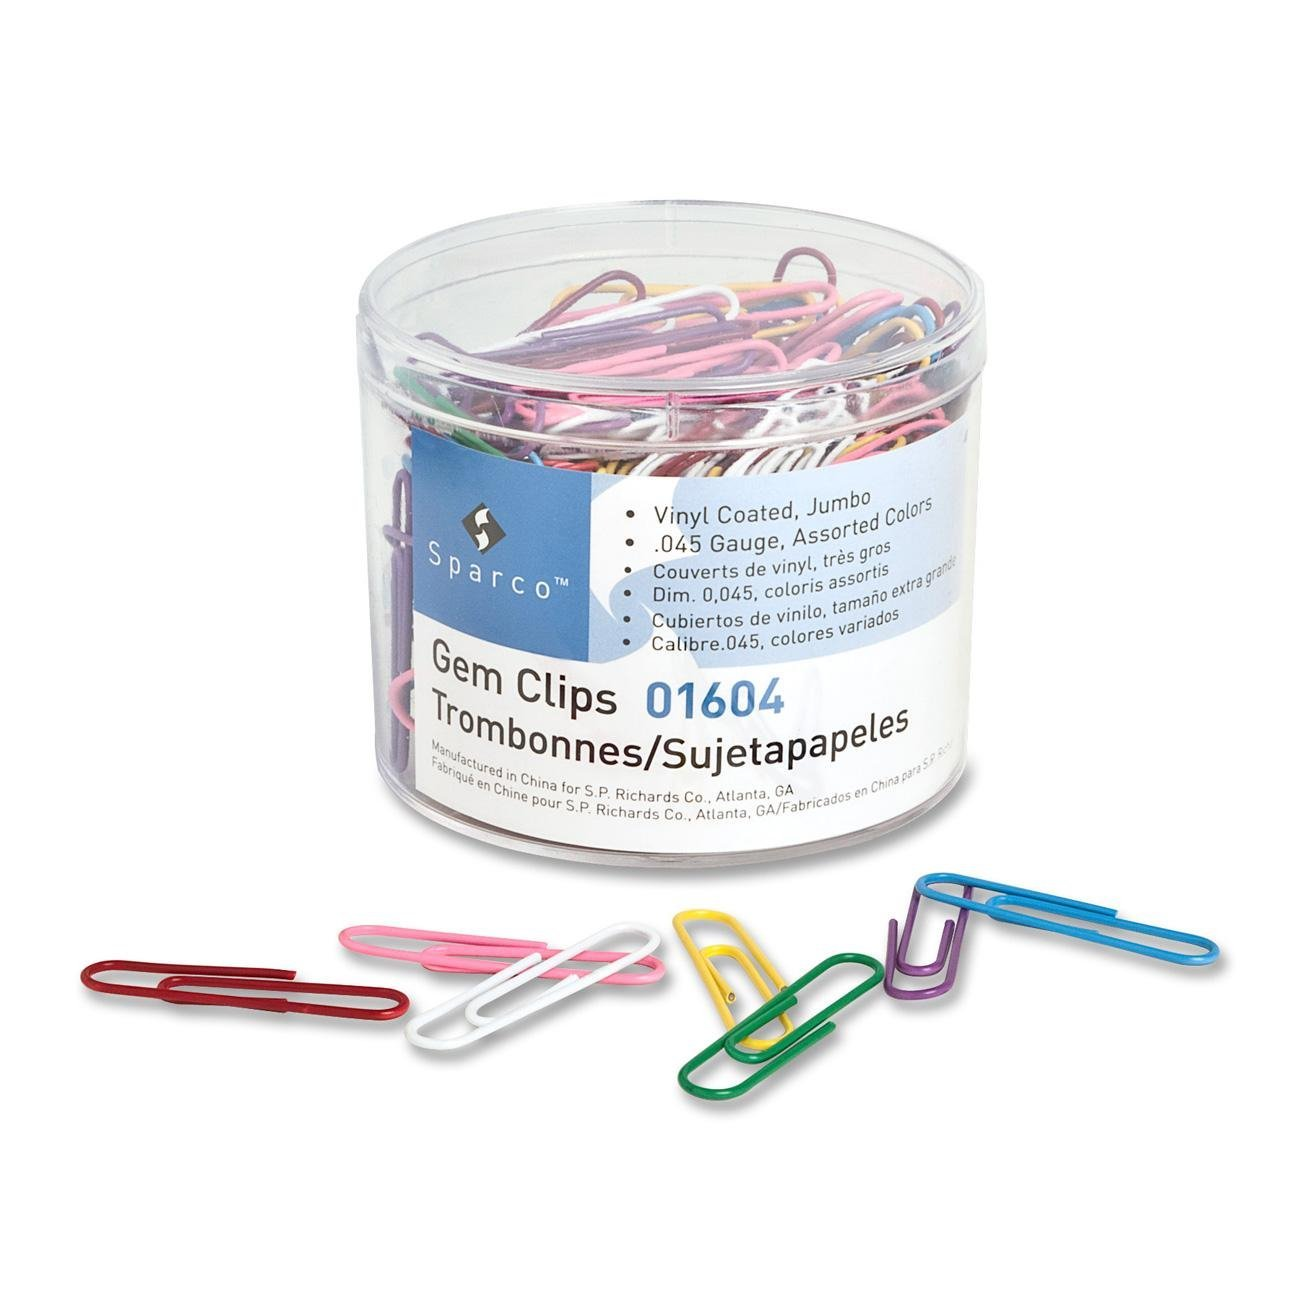 Amazon.com : Sparco 01604 Paper Clips.045 Guage, Vinyl Coated, Jumbo, 200/Box, AST : Office Products